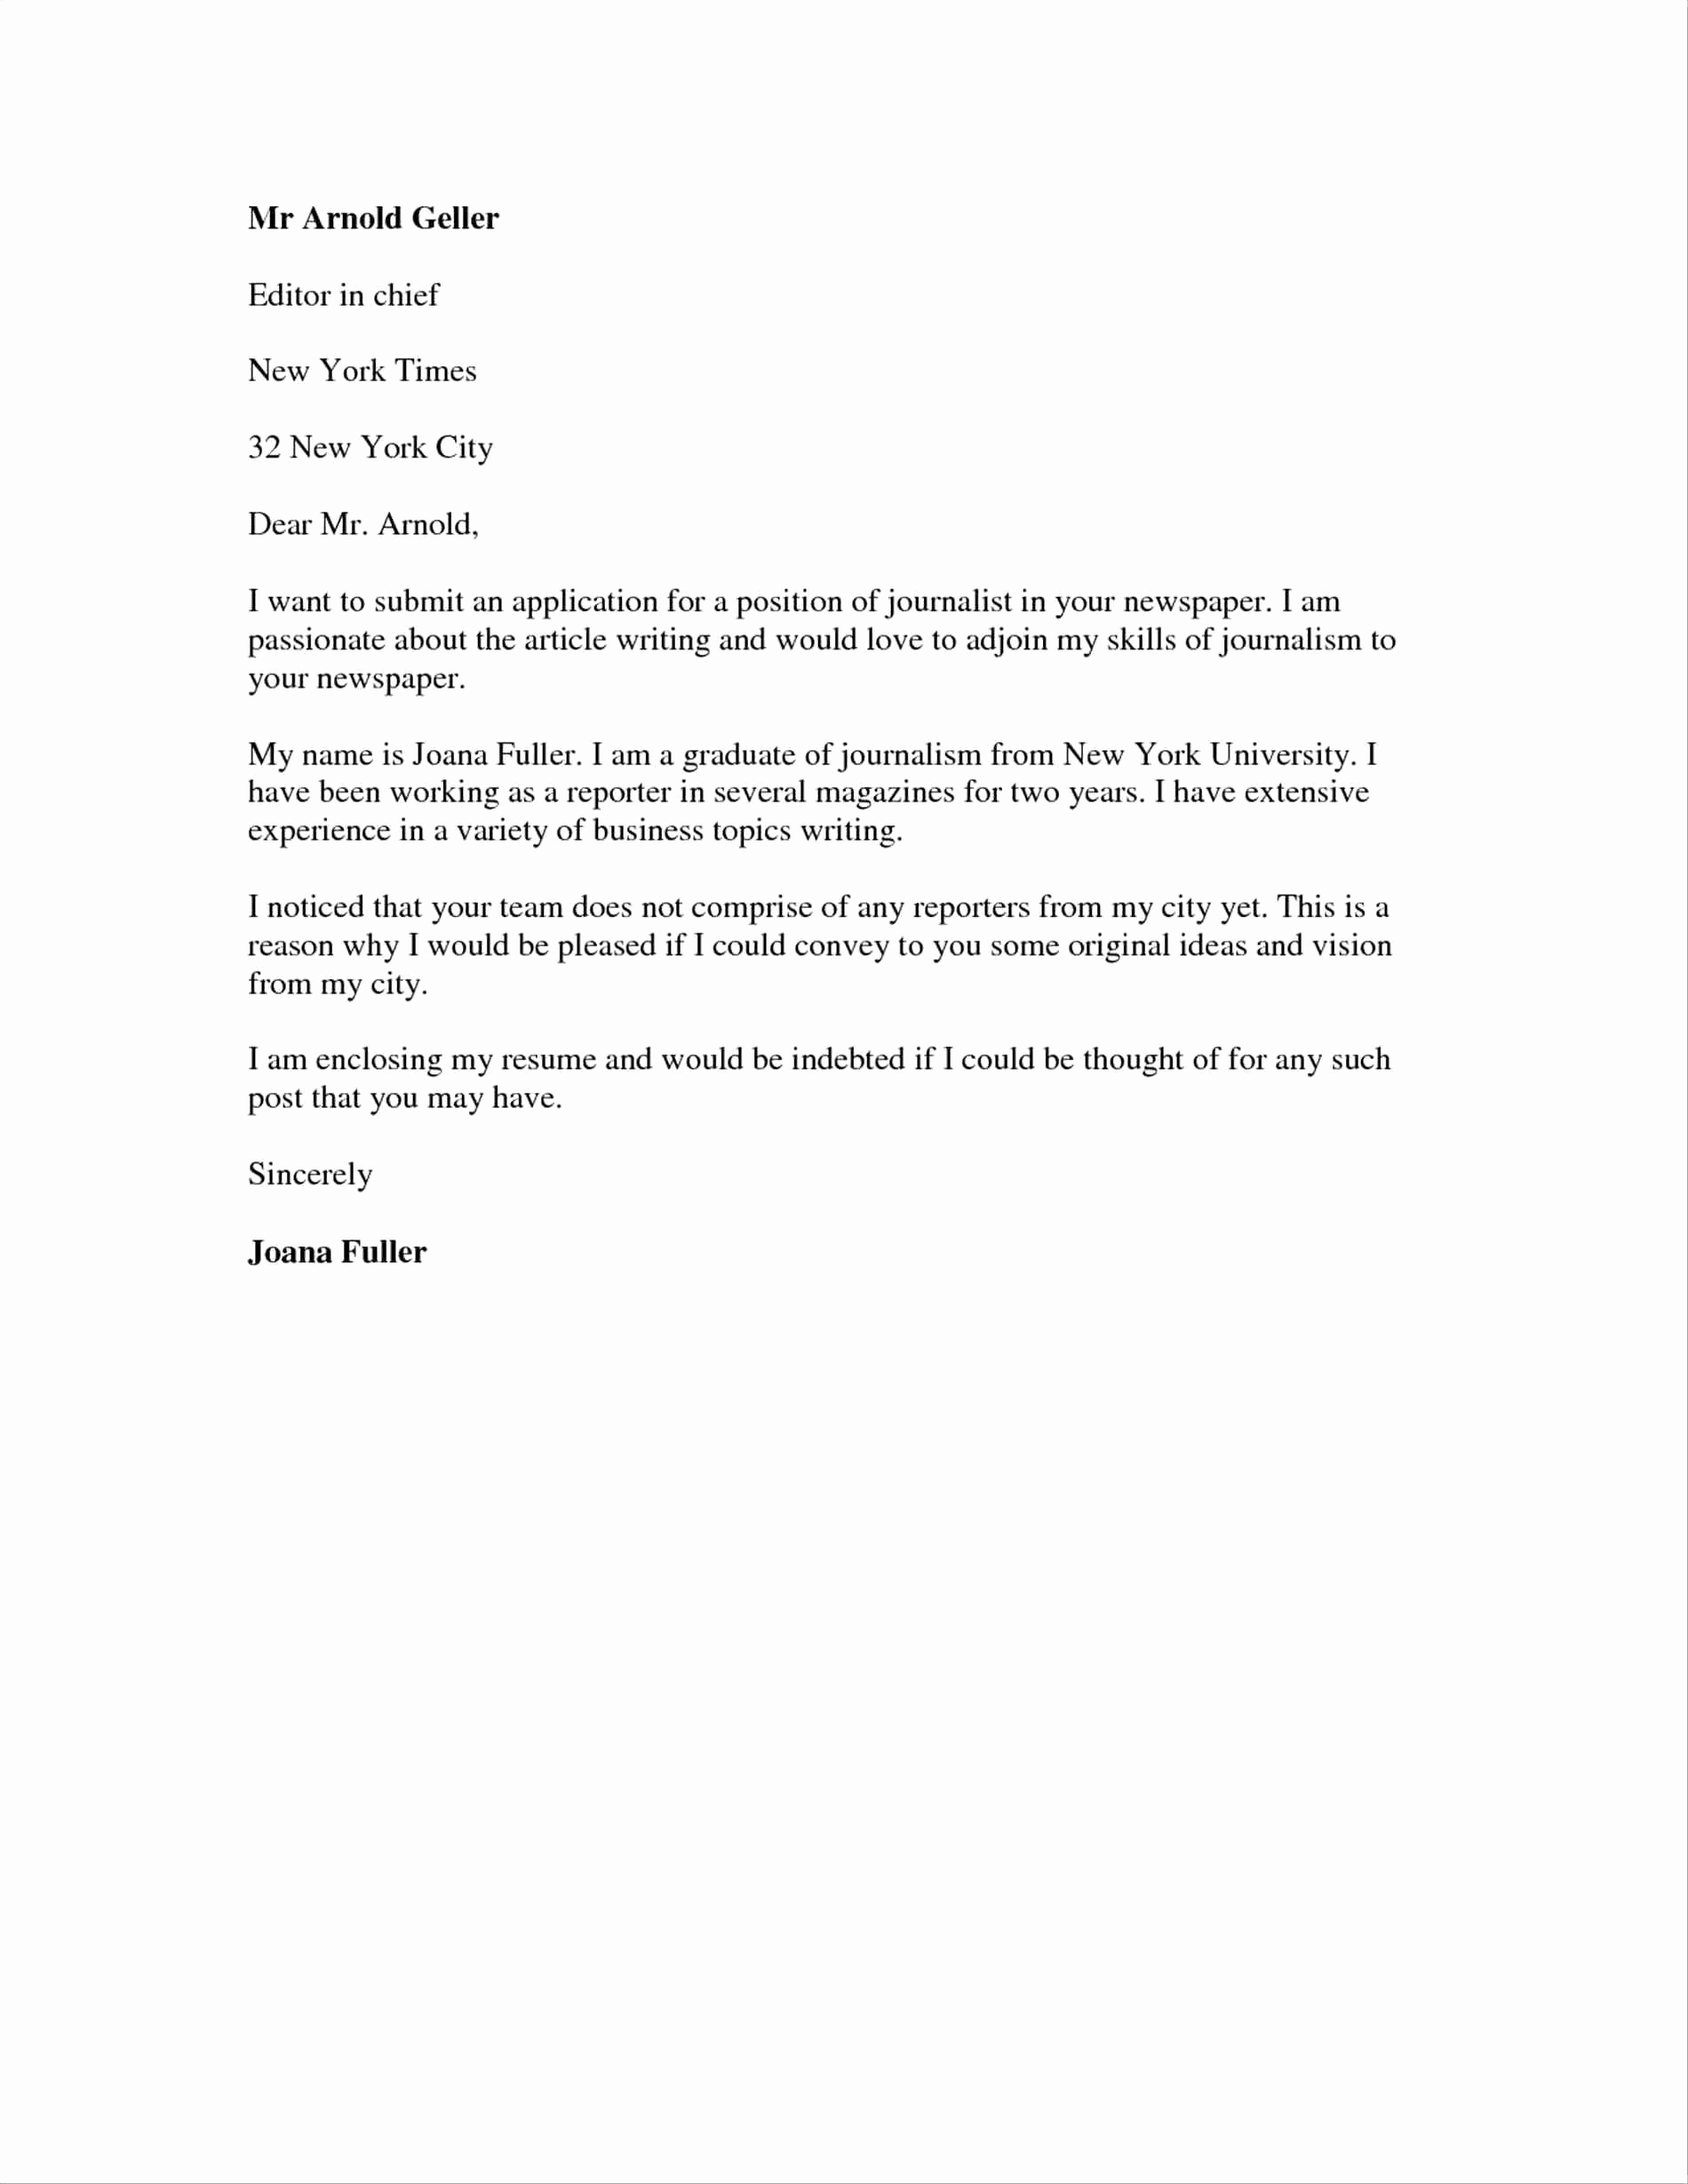 Credit Report Dispute Letter Template - Job Letter Template Awesome Credit Report Dispute Letter Template